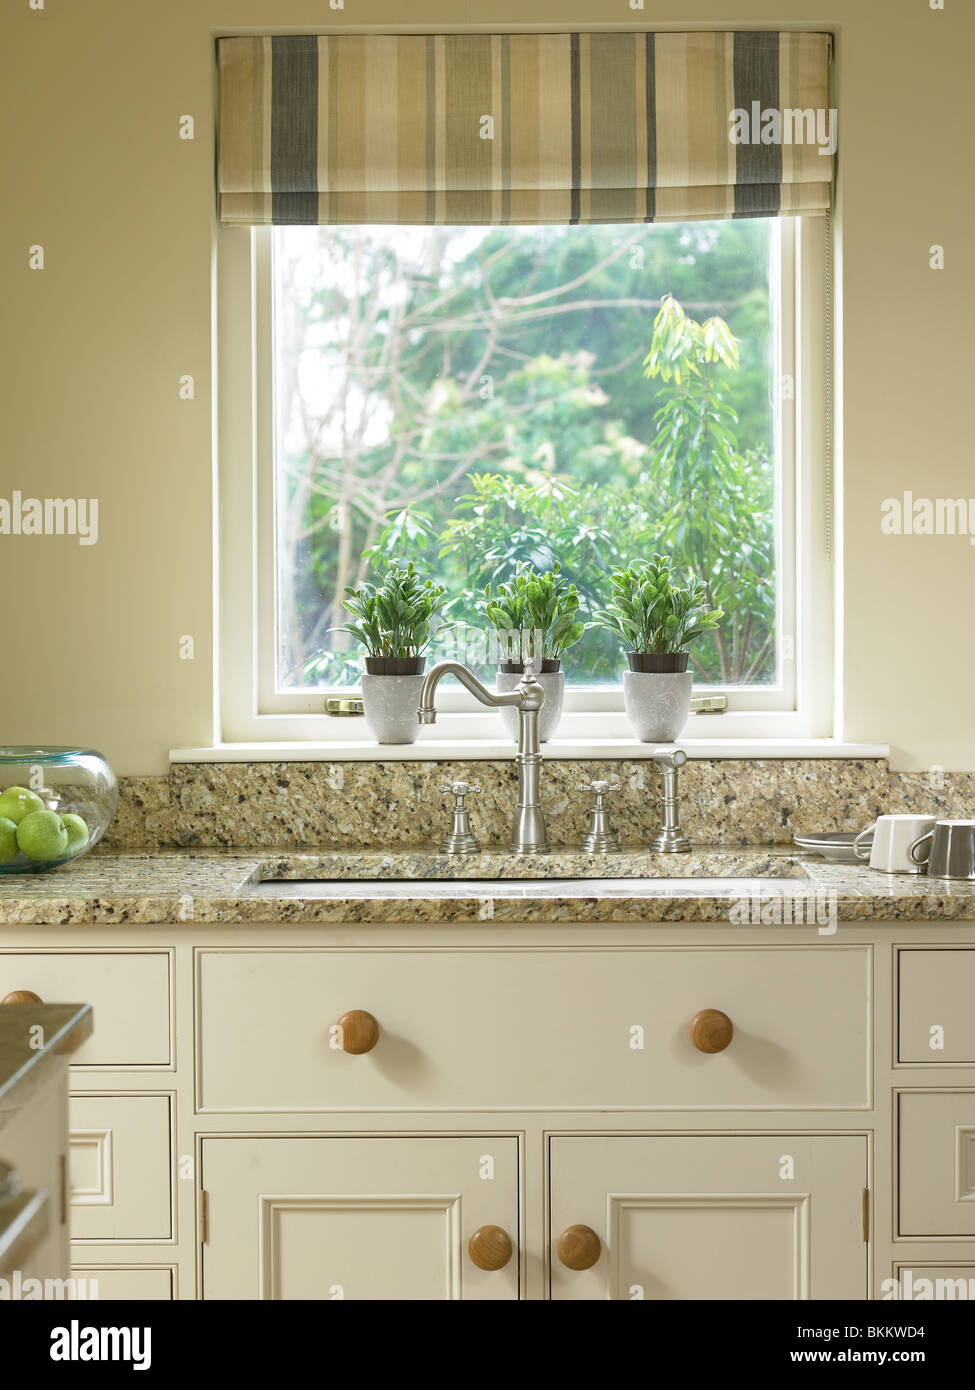 Kitchen in a home in Dunadry - Stock Image